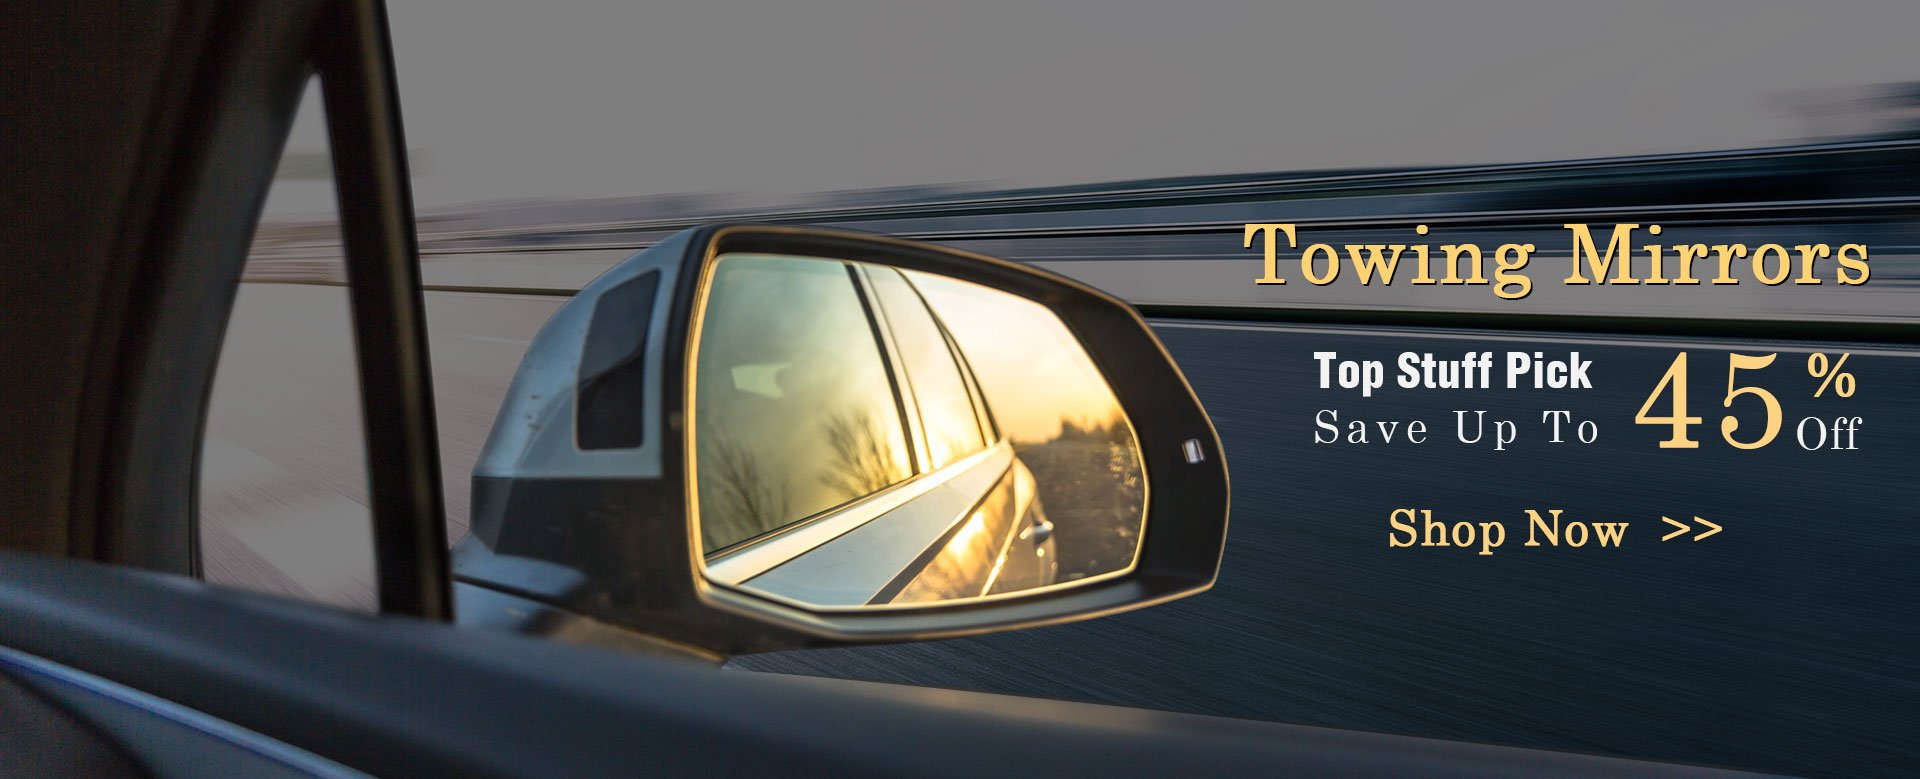 Towing Mirrors Sale